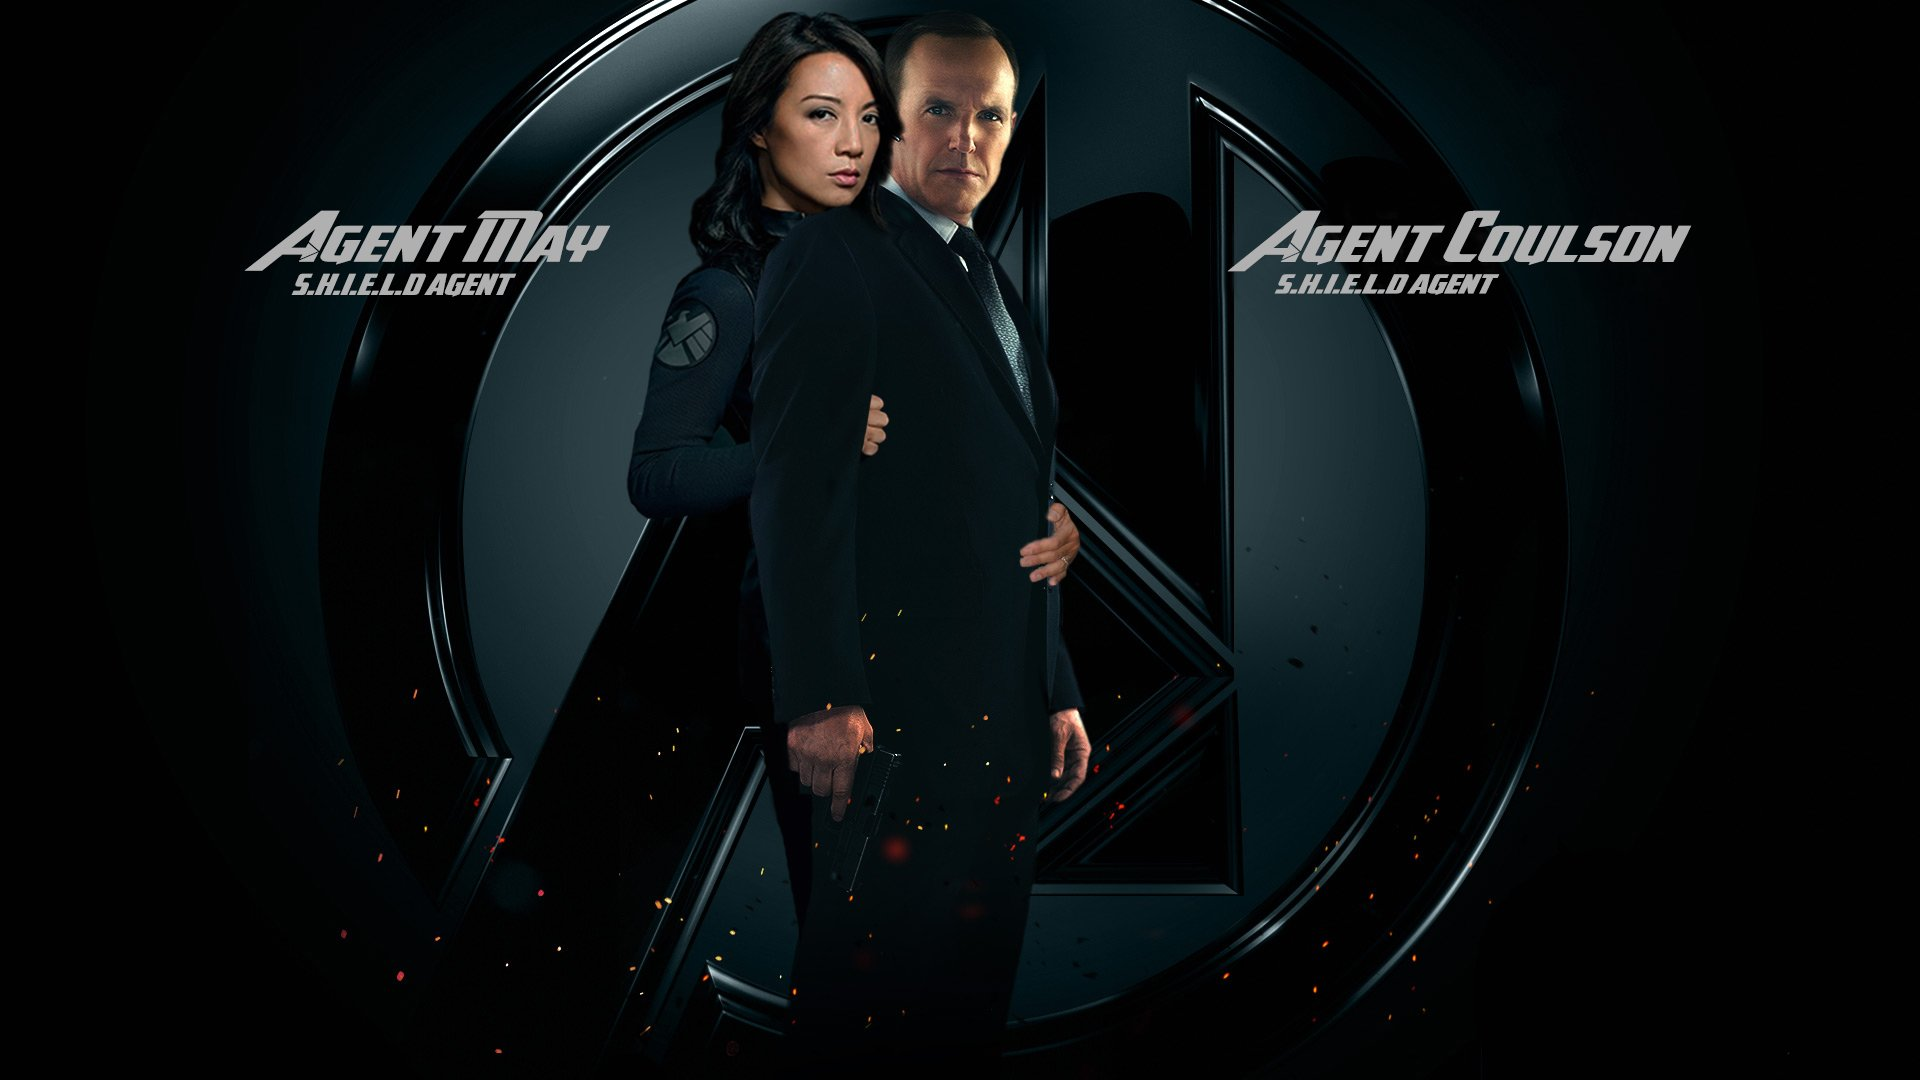 AGENTS OF SHIELD action drama sci fi marvel comic series crime 43 1920x1080